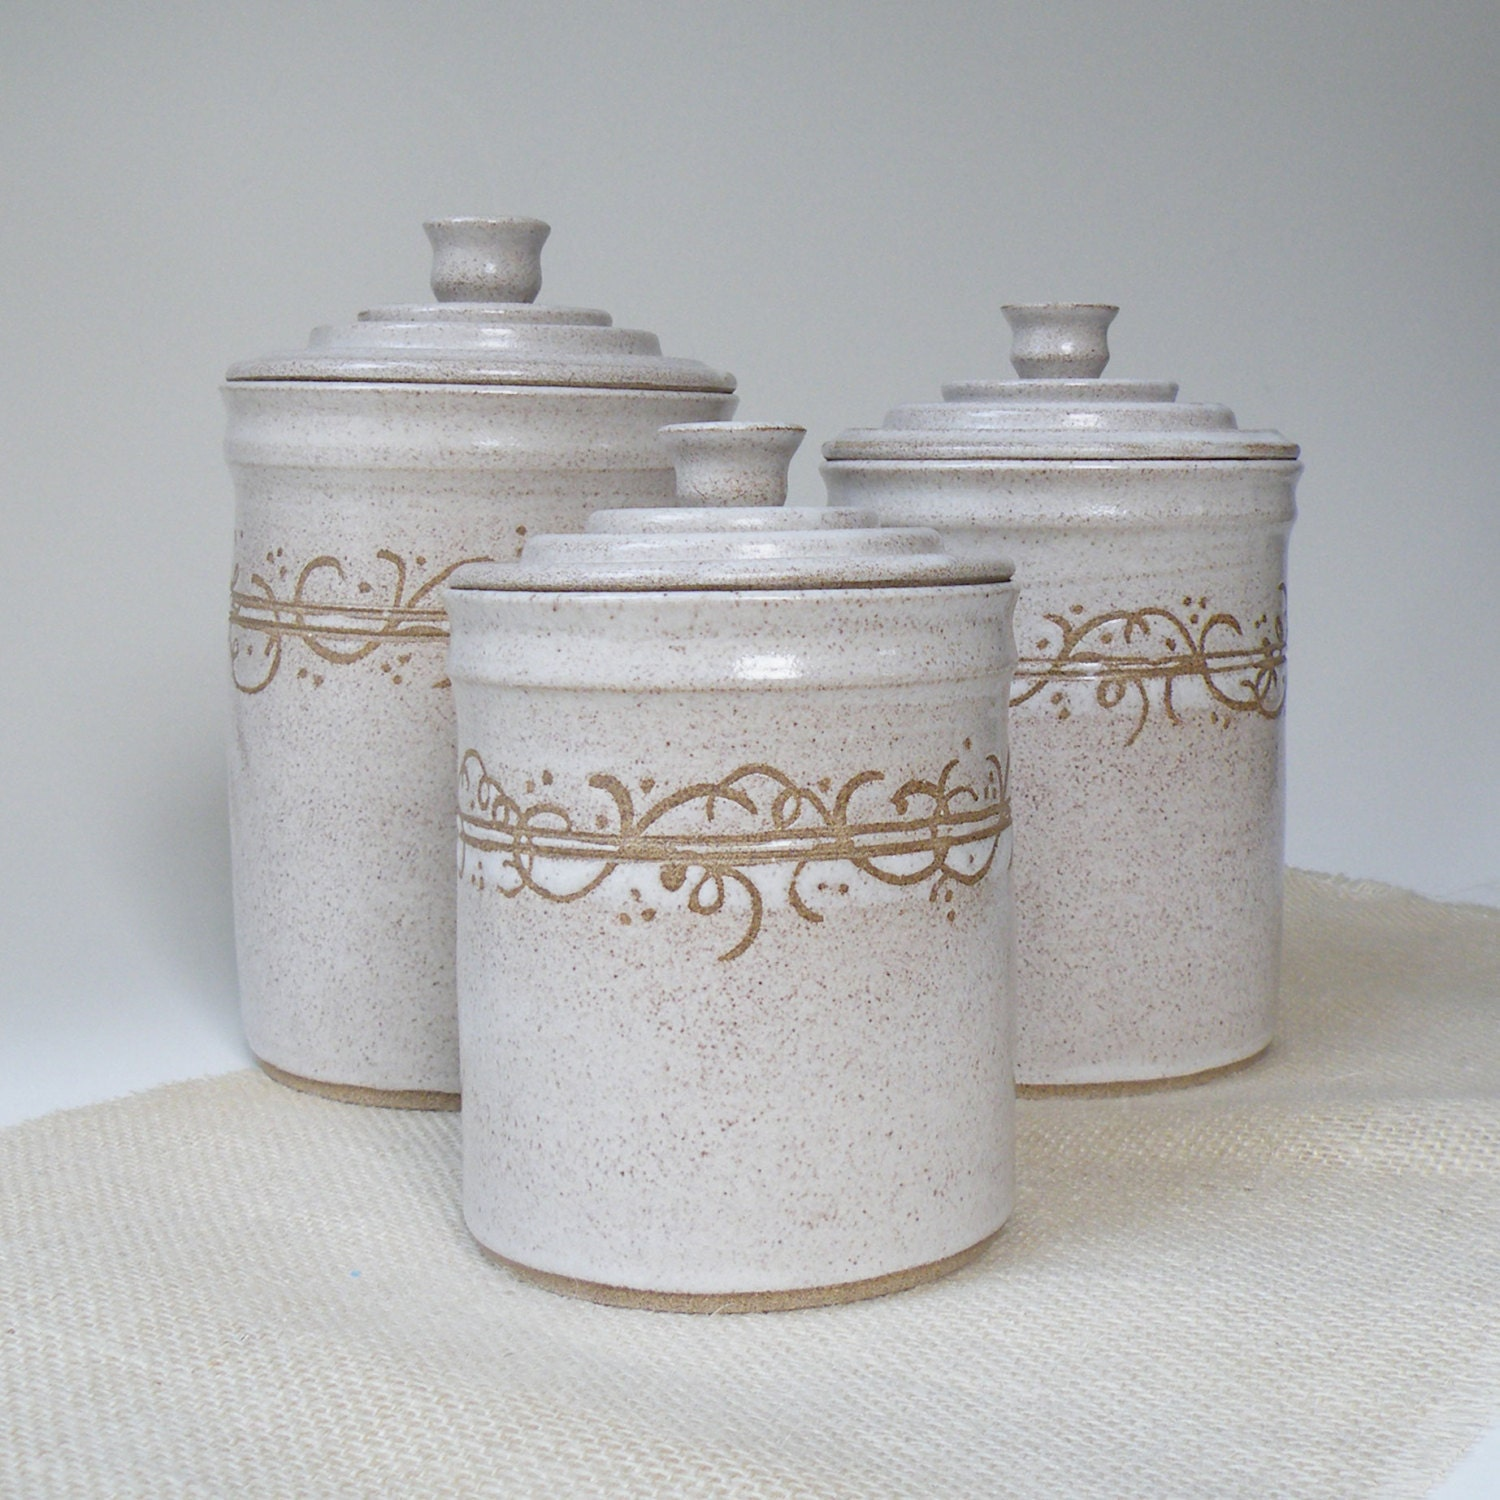 kitchen canisters ceramic sets kitchen collections vintage white ceramic canisters set of 3